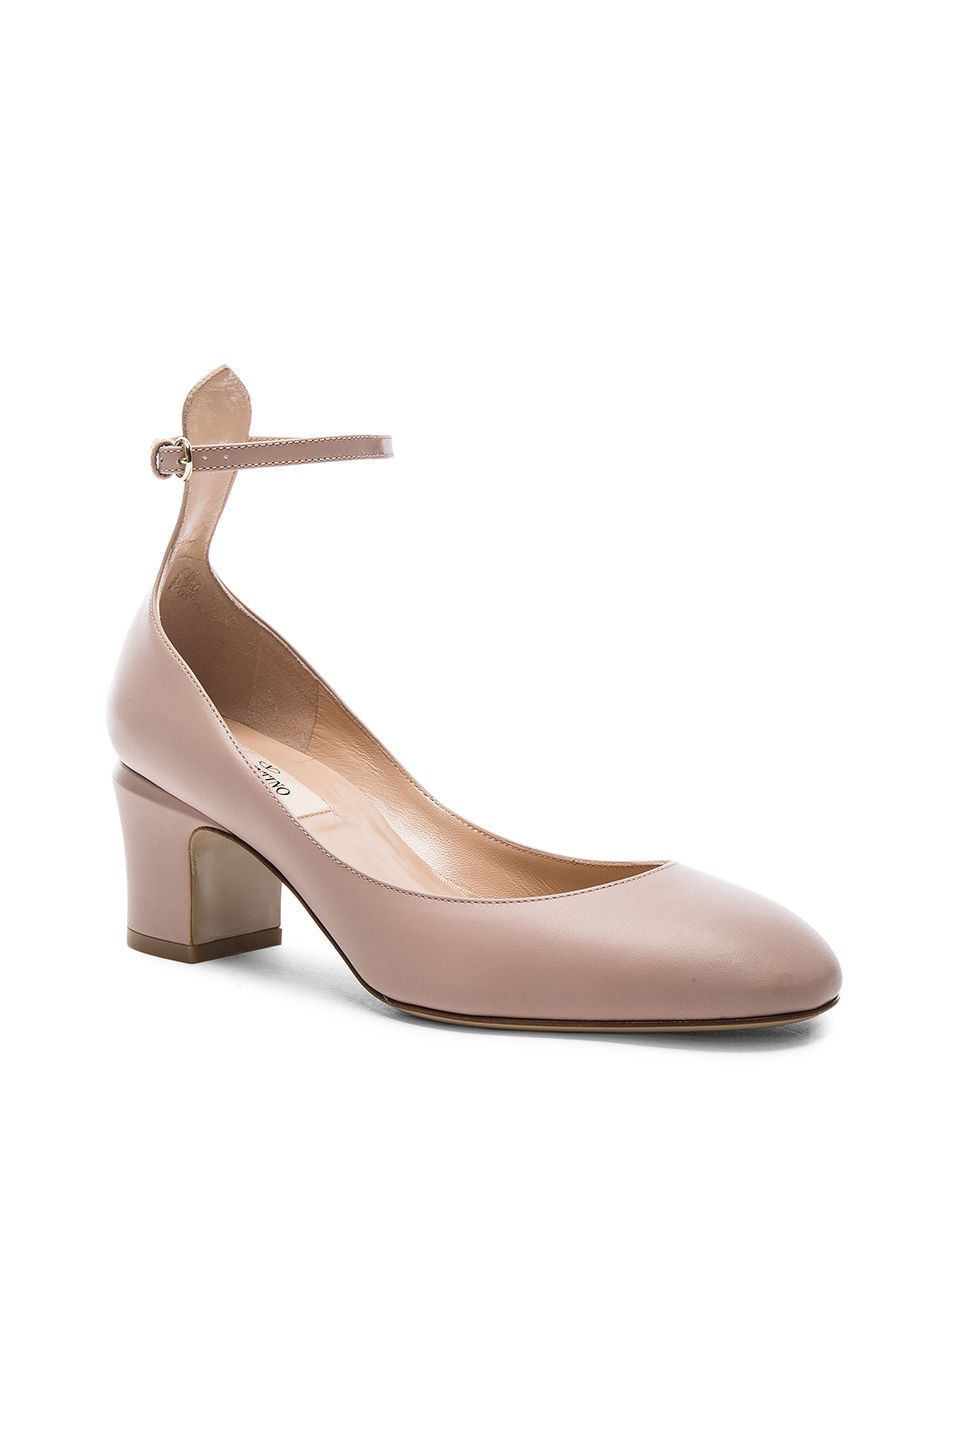 Valentino Leather Tan-Go Pumps in . RXTzDy